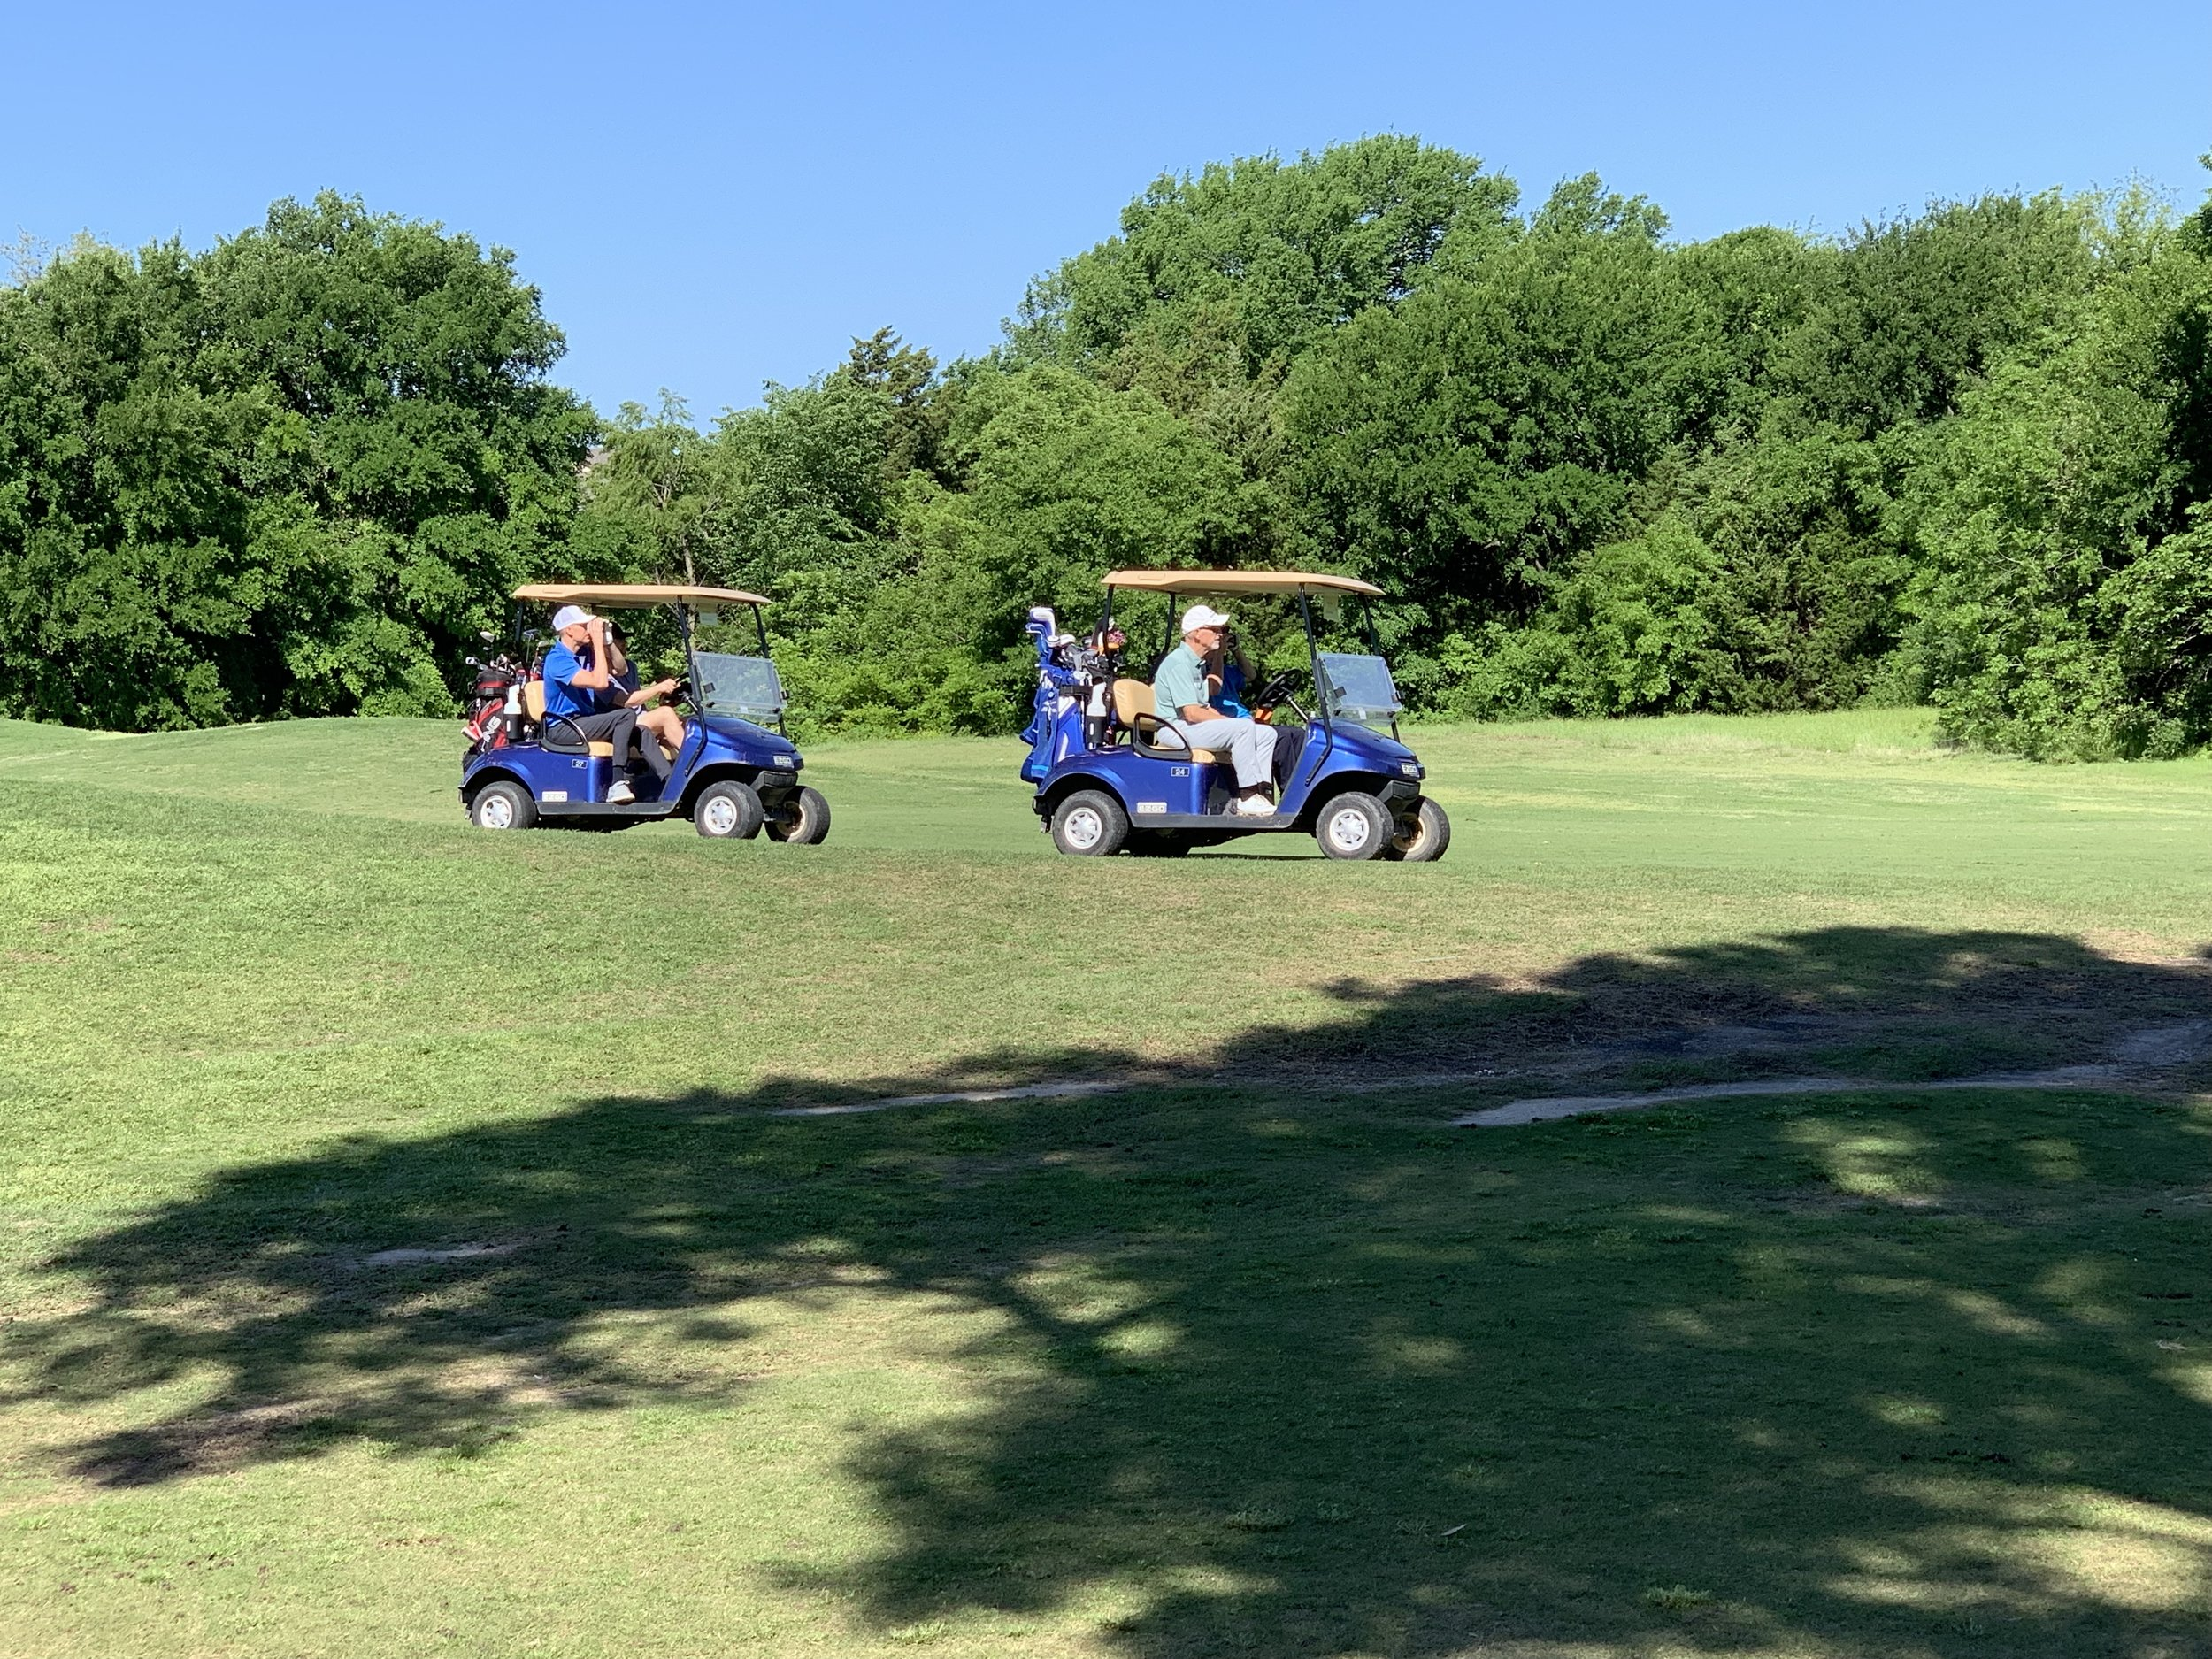 Photo Apr 26, 10 06 11 AM.jpg